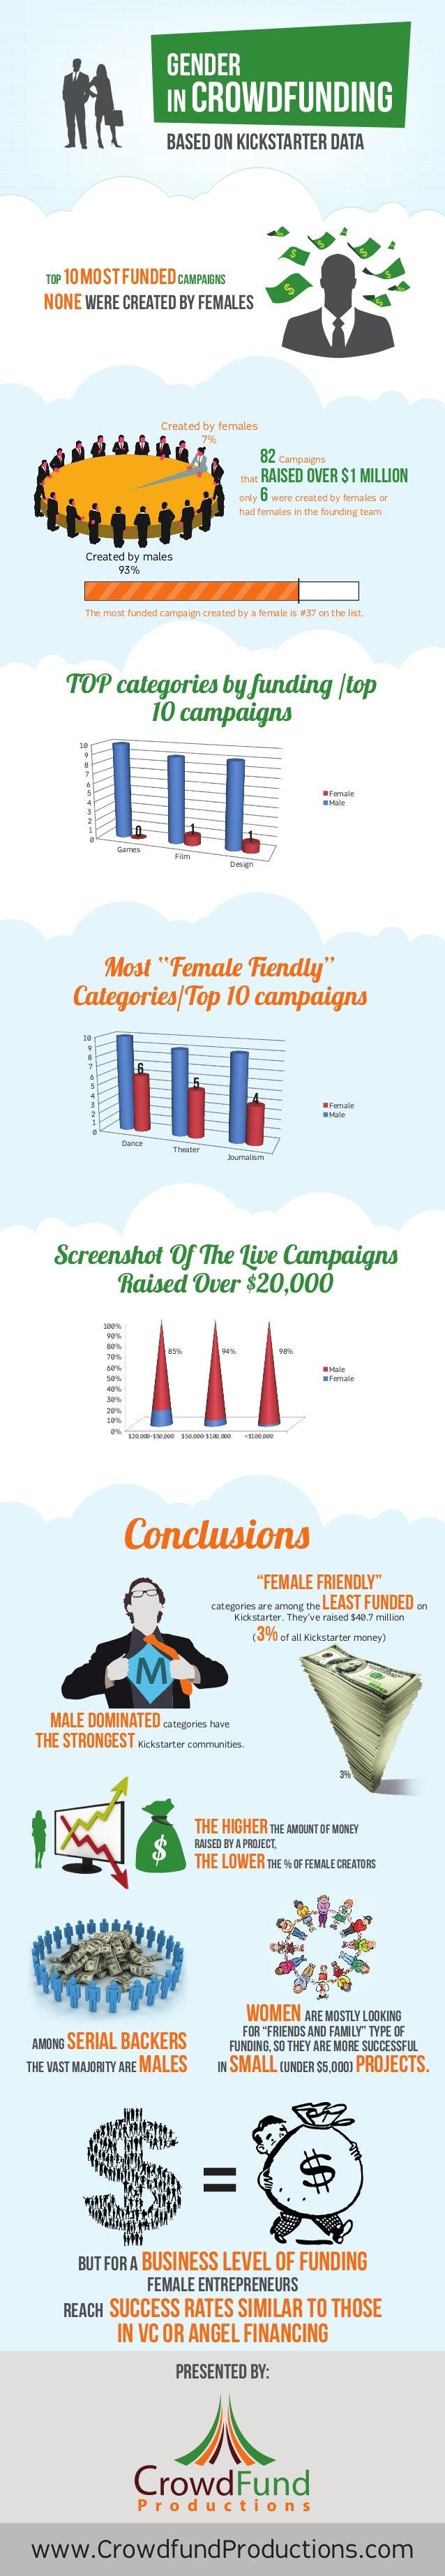 Top 10MostFundedCampaigns none were created by females $ $ $ $ $ $ $ $ $ $ 82 Campaigns only 6 were created by females or ...